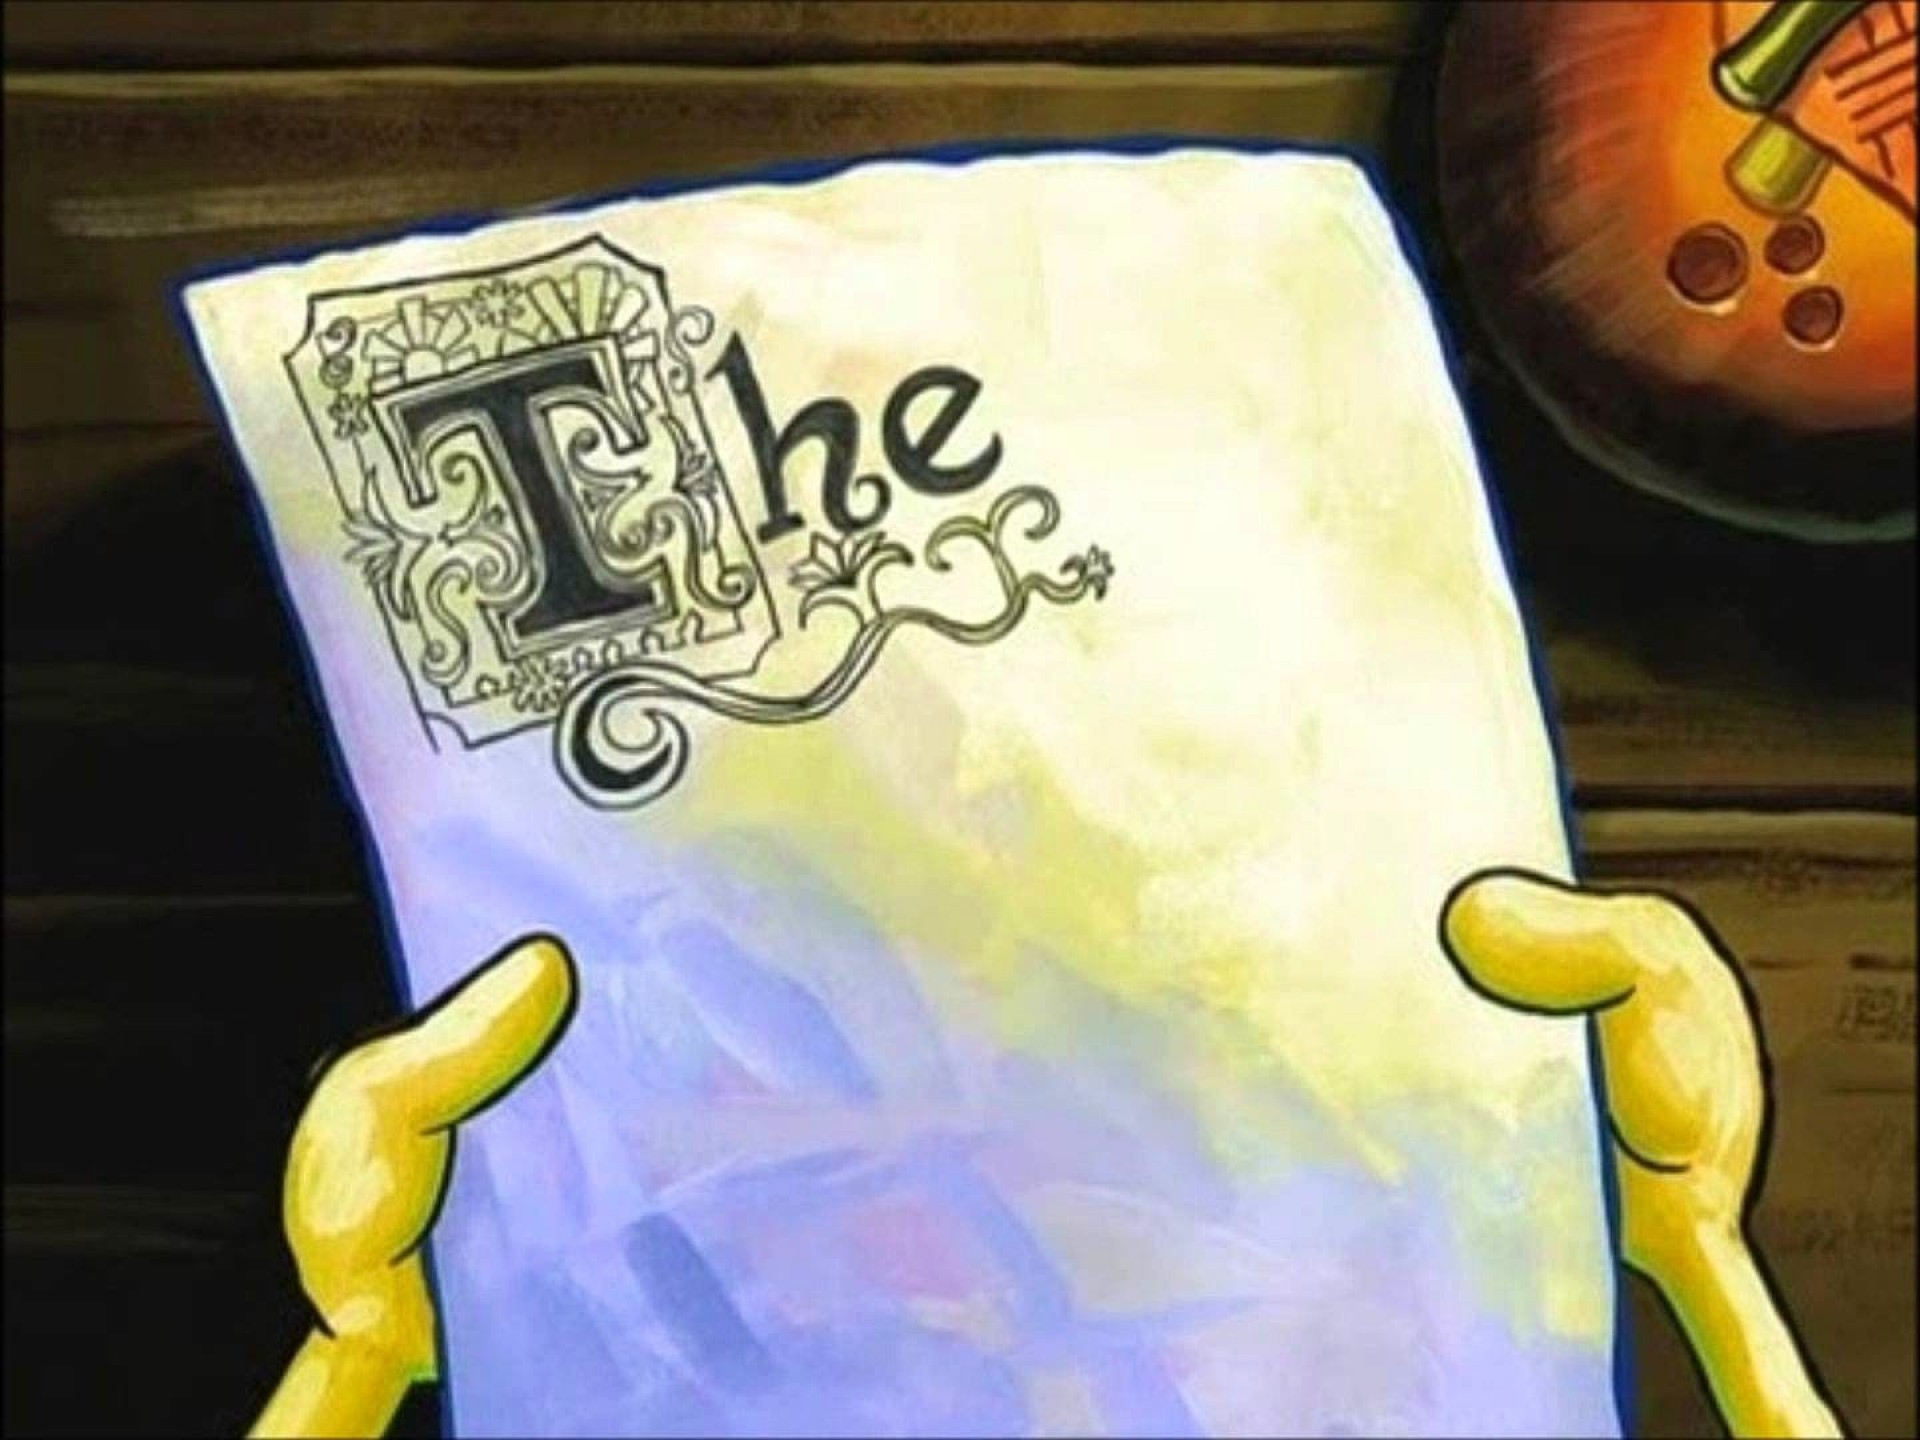 005 Spongebob Writing Essay Remarkable Meme Gif 1920